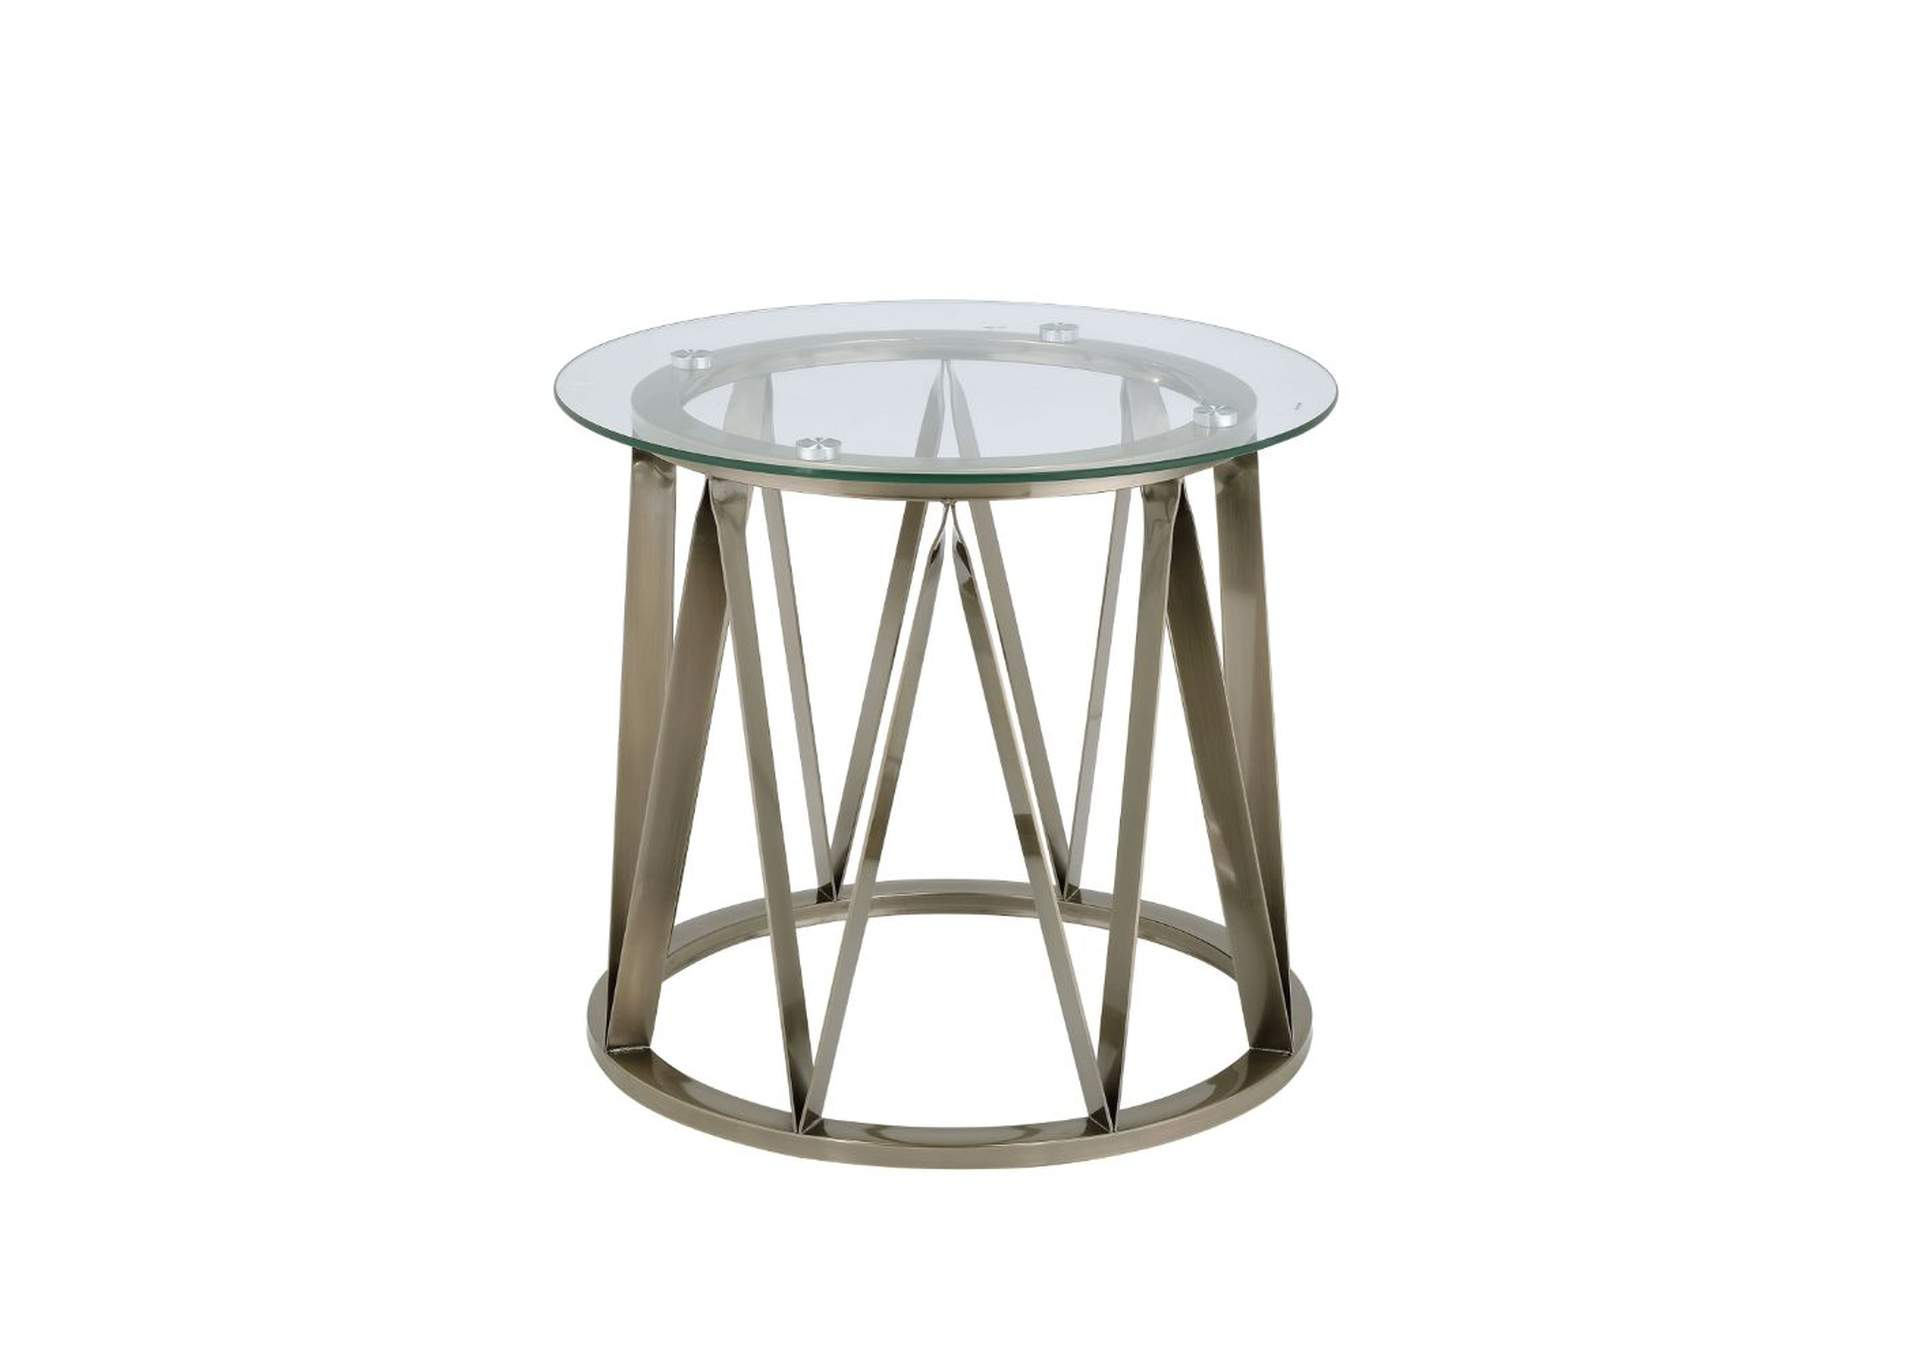 Perjan Antique Brass & Clear Glass End Table,Acme